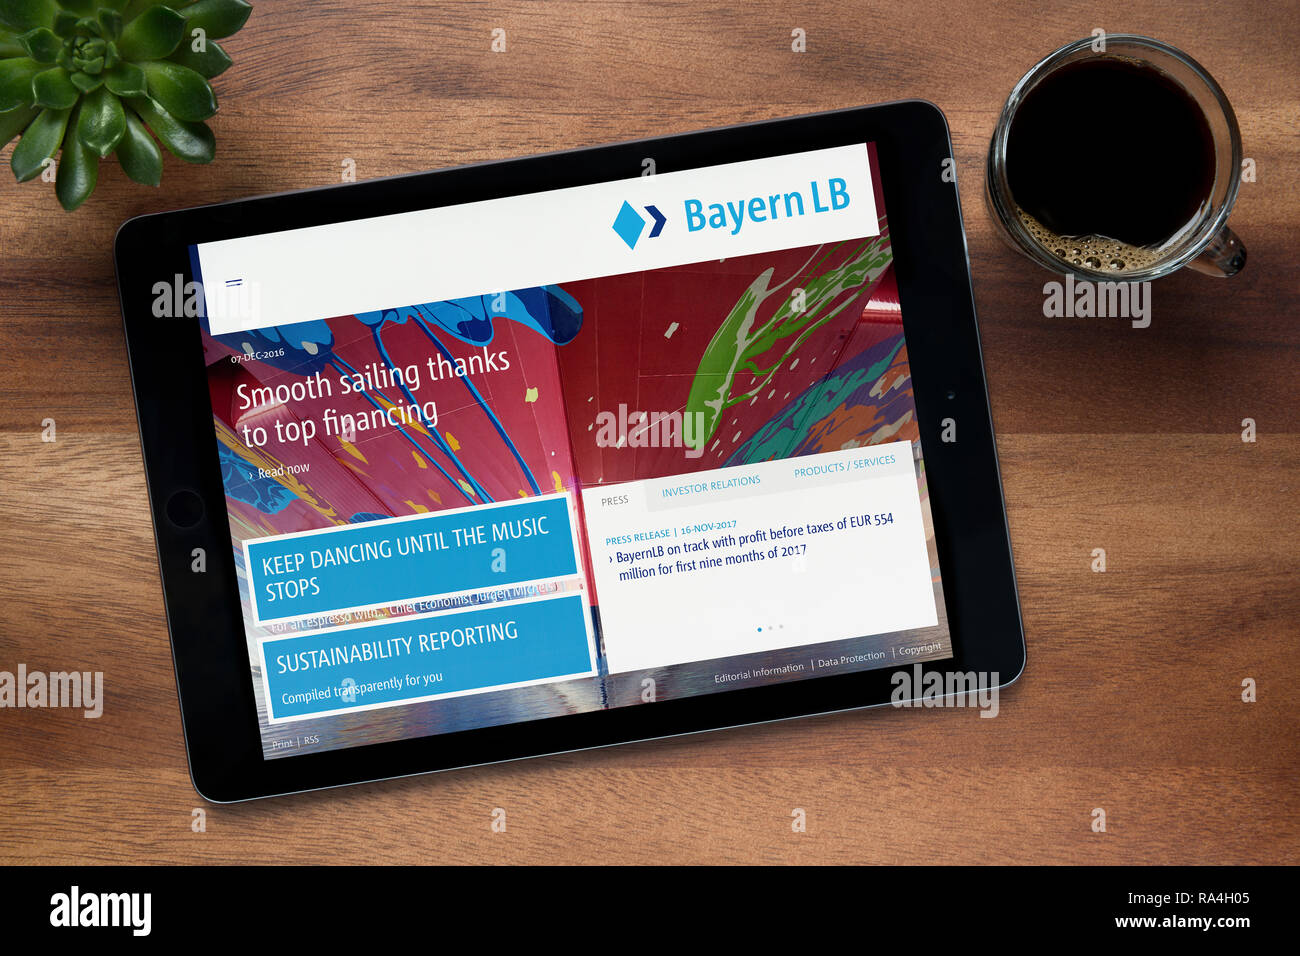 The website of Bayern LB is seen on an iPad tablet, on a wooden table along with an espresso coffee and a house plant (Editorial use only). - Stock Image